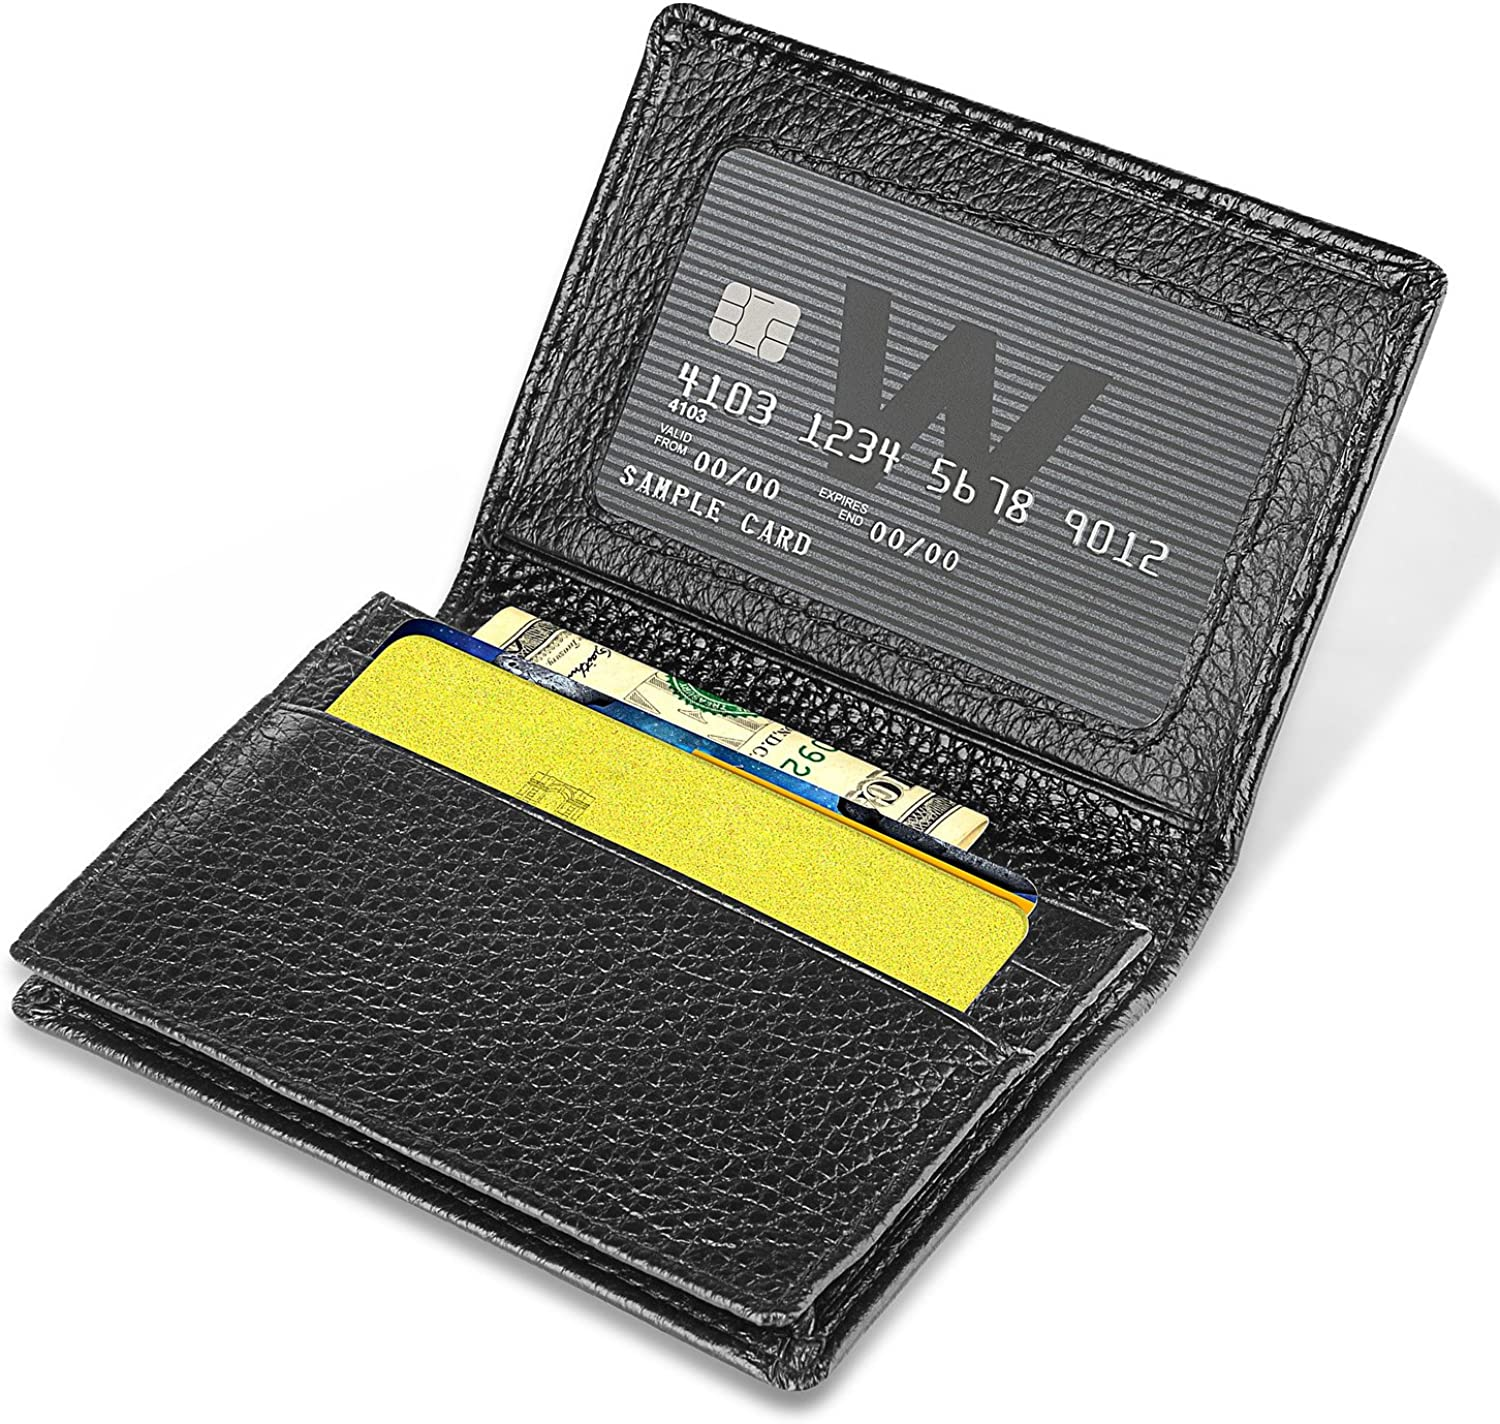 Zodaca Genuine Leather Business Card Holder Expandable Antimagnetic Credit Wallet With ID Window Black